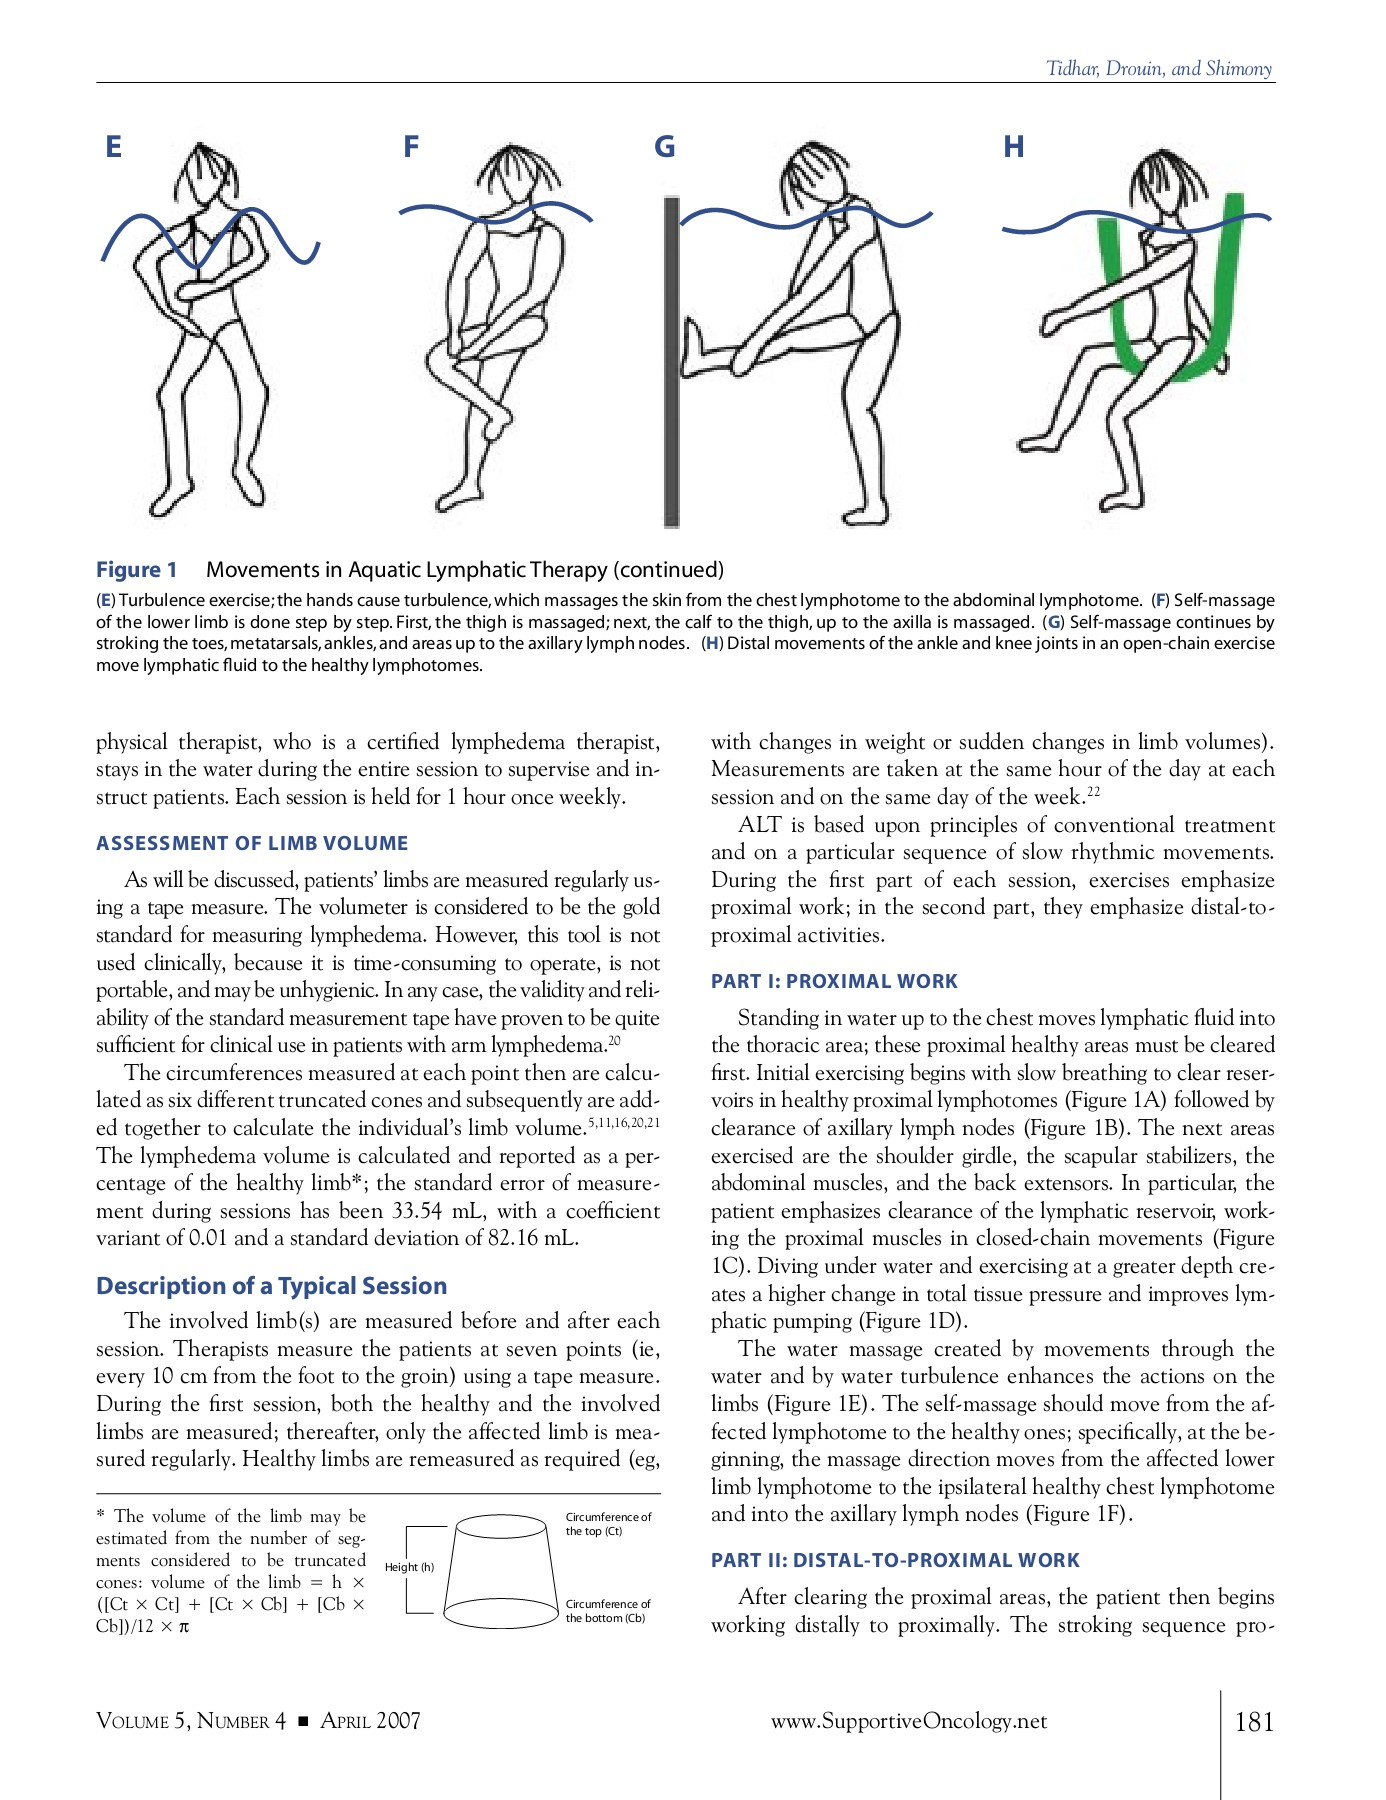 hight resolution of aqua lymphatic therapy in managing lower extremity lymphedema pages 1 5 text version anyflip